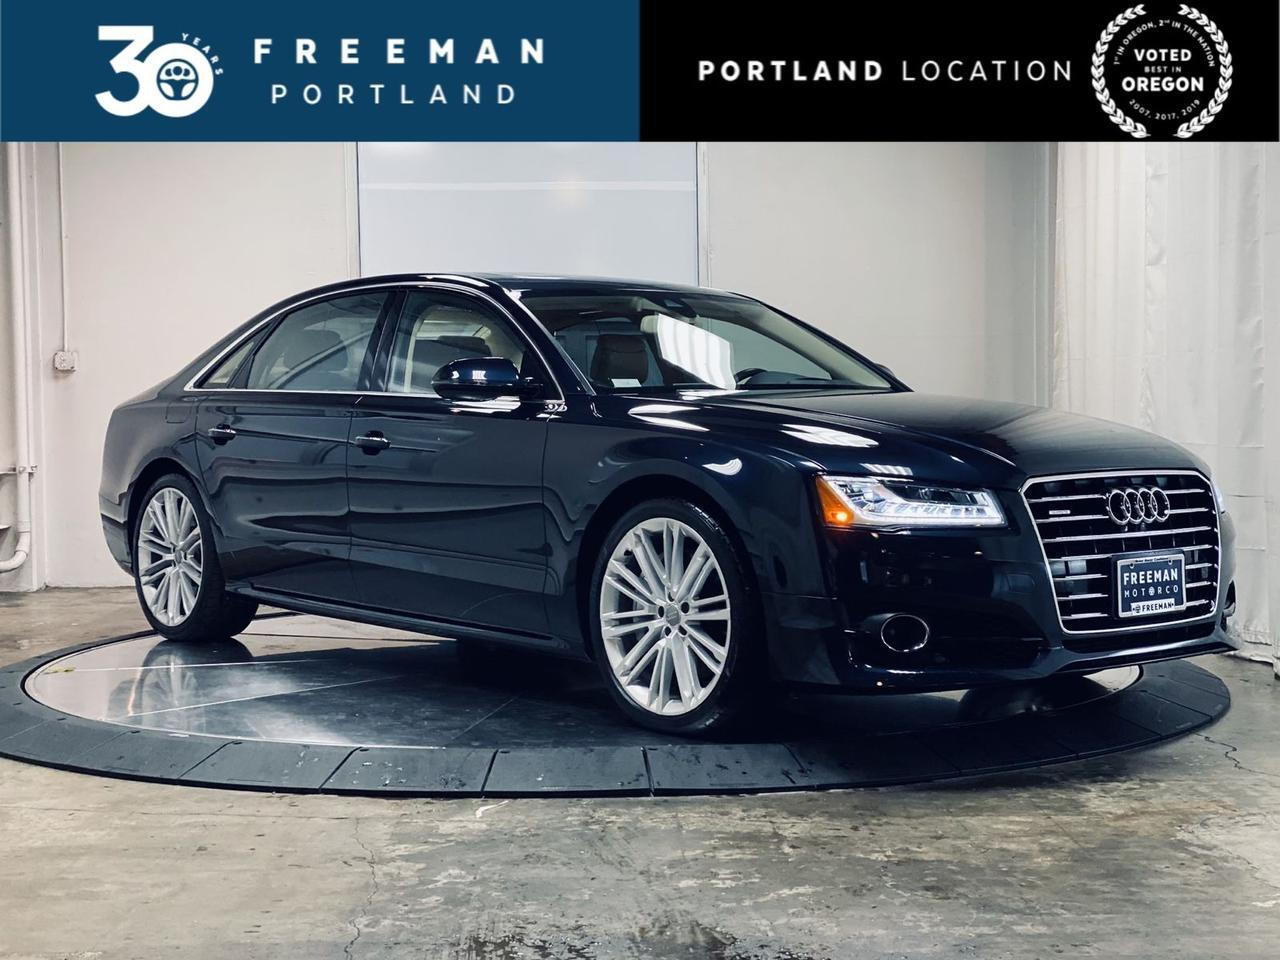 2017 Audi A8 L Sport Active Lane Assist Heated & Cooled Front Seats Massage Seats Portland OR